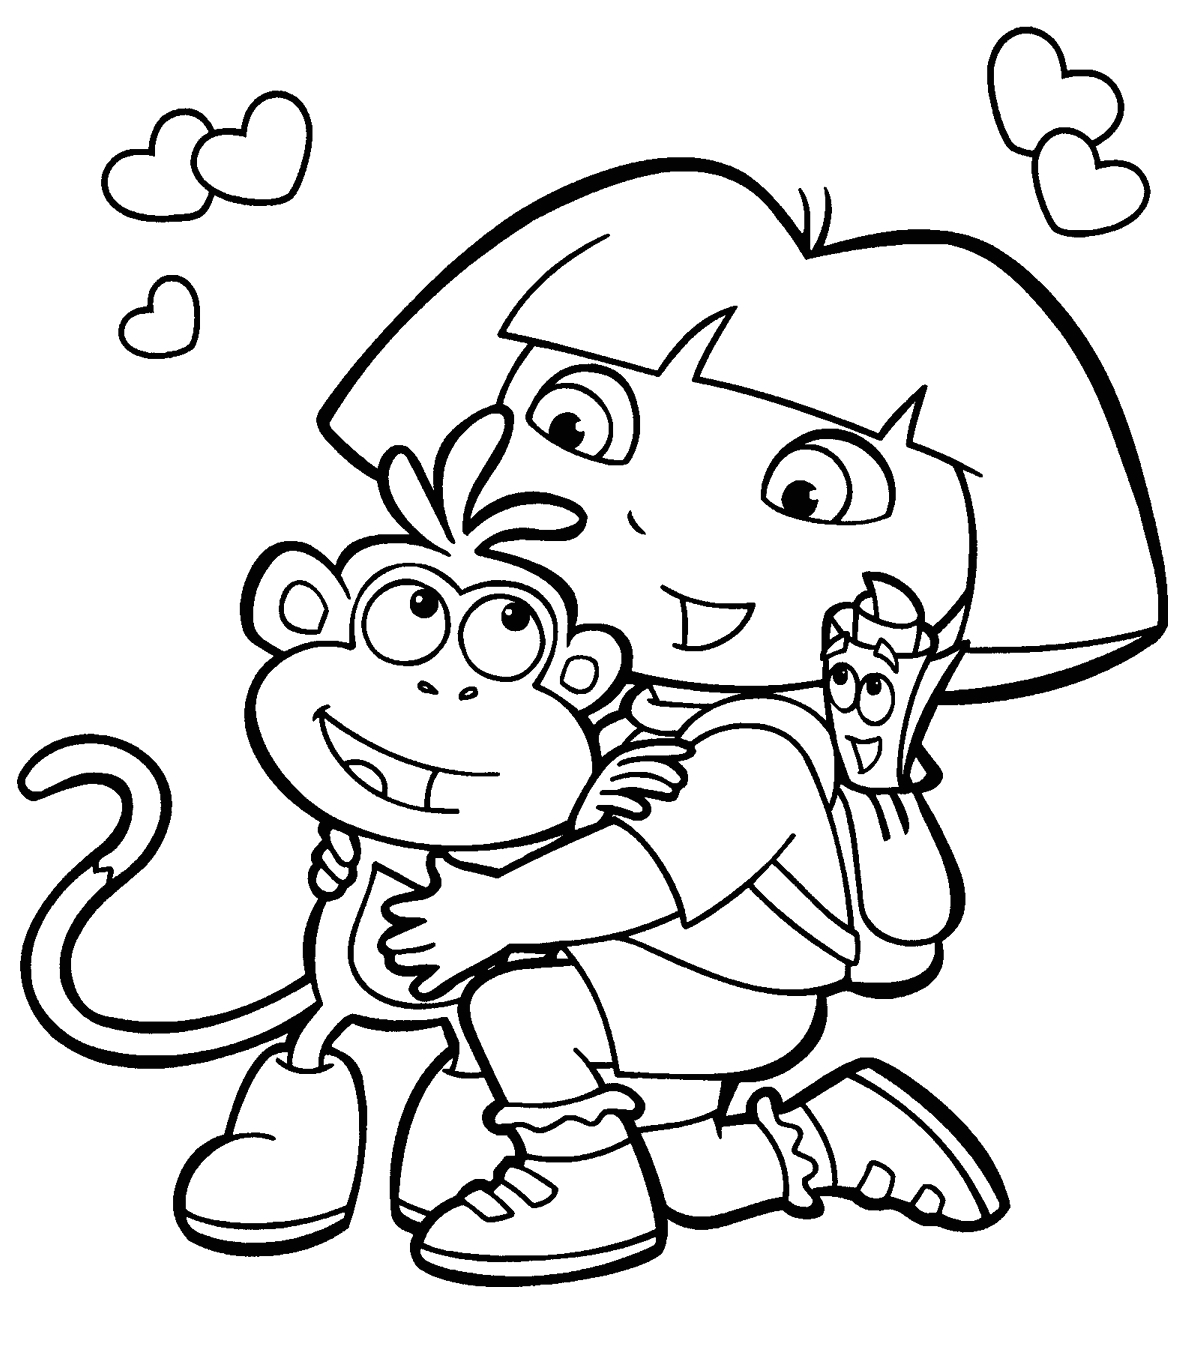 Dora and Boots Coloring Pages to Print Dora and Boots Coloring Pages at Getdrawings